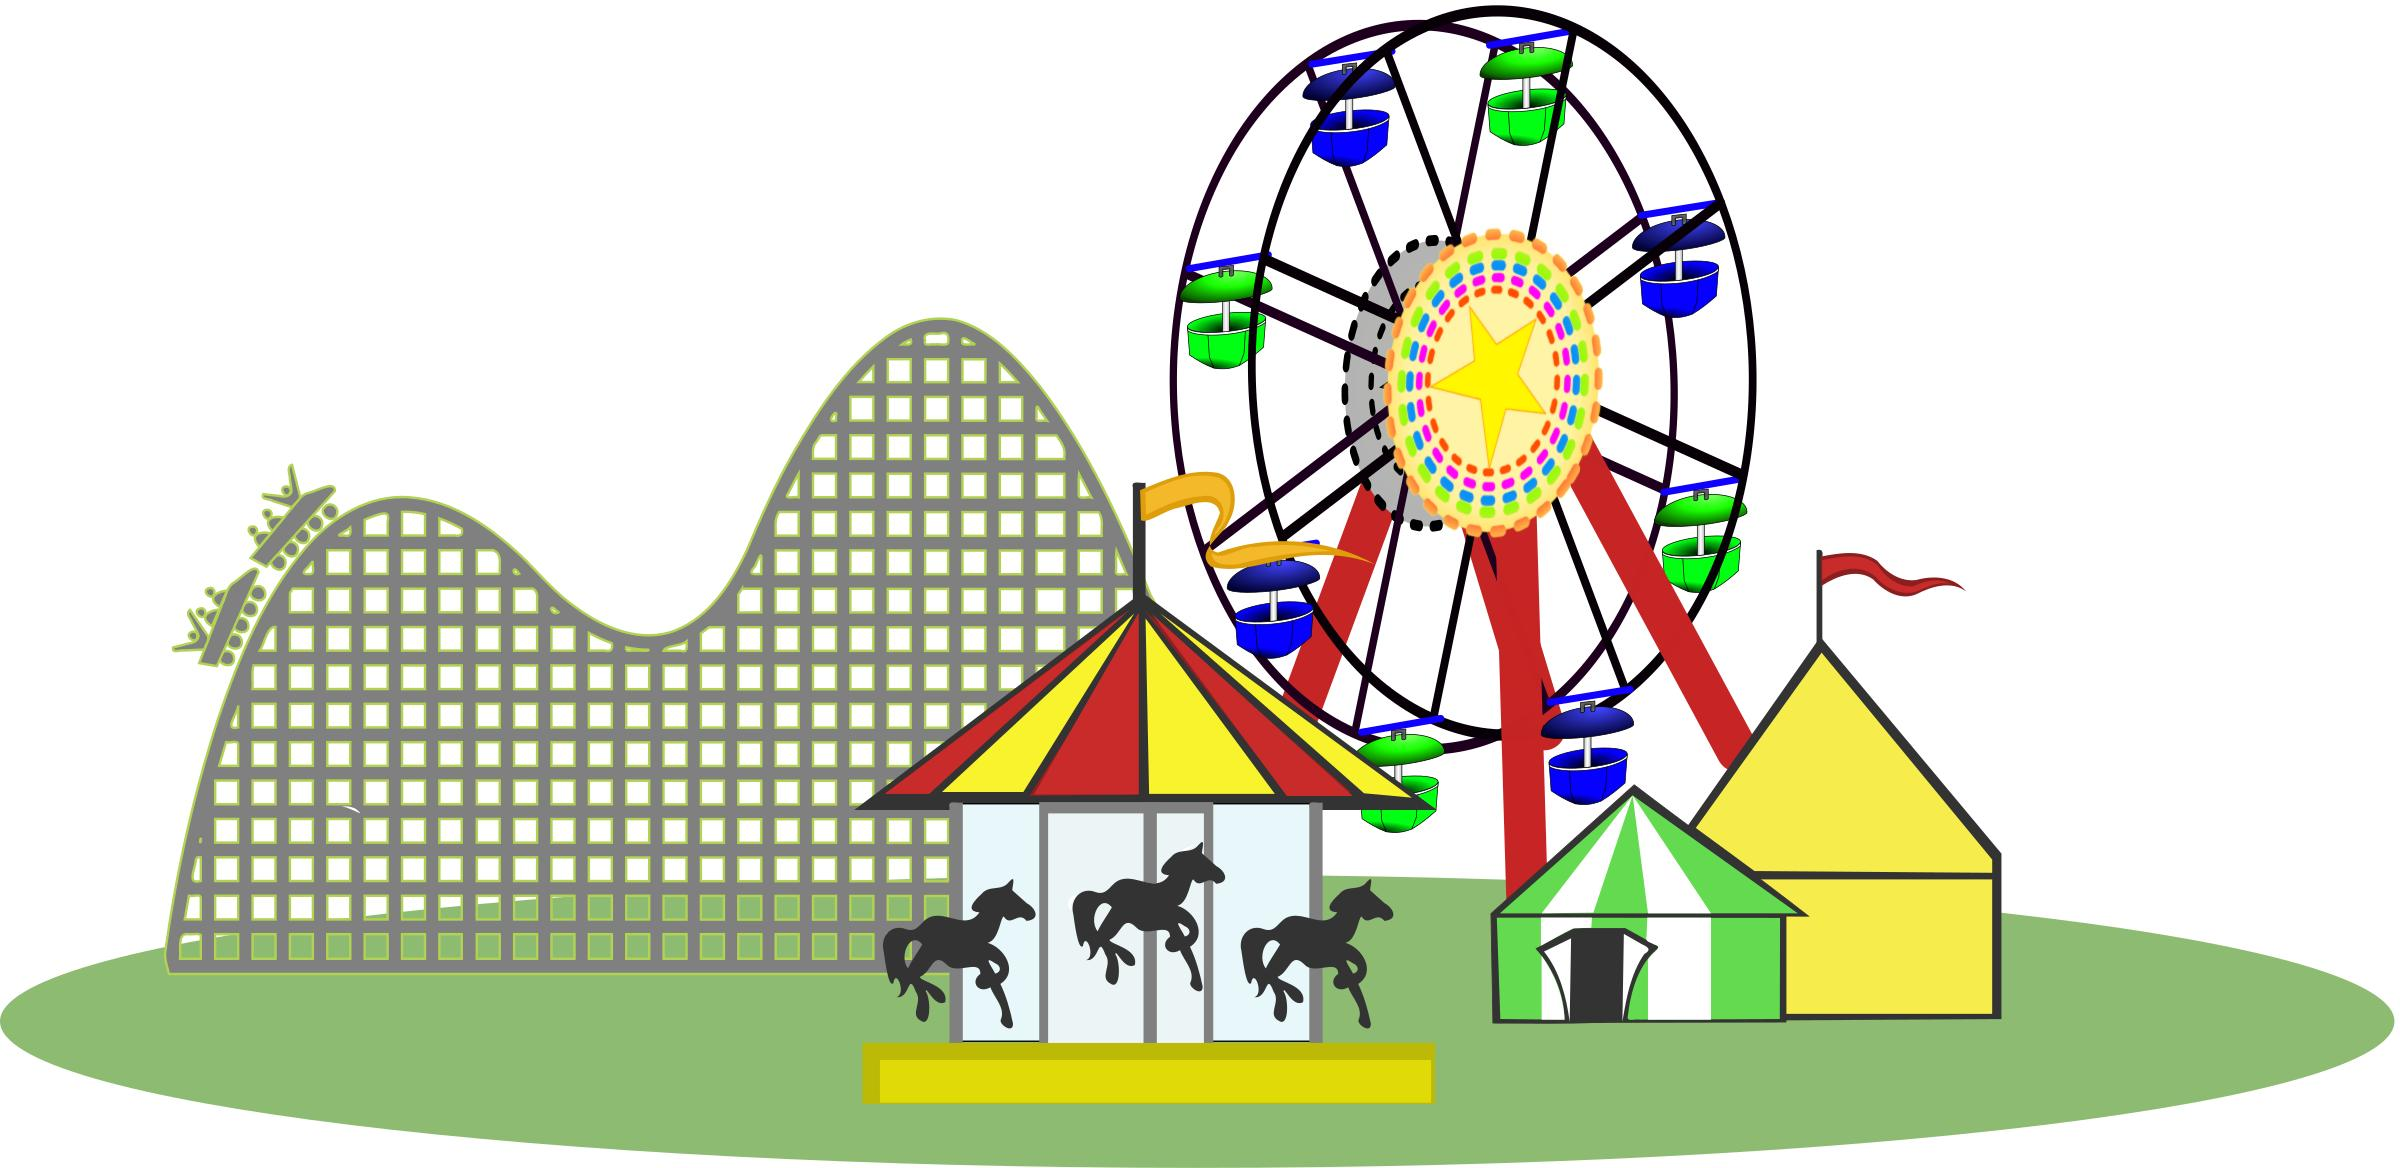 Carnival clipart roller coaster. Remix of color wide